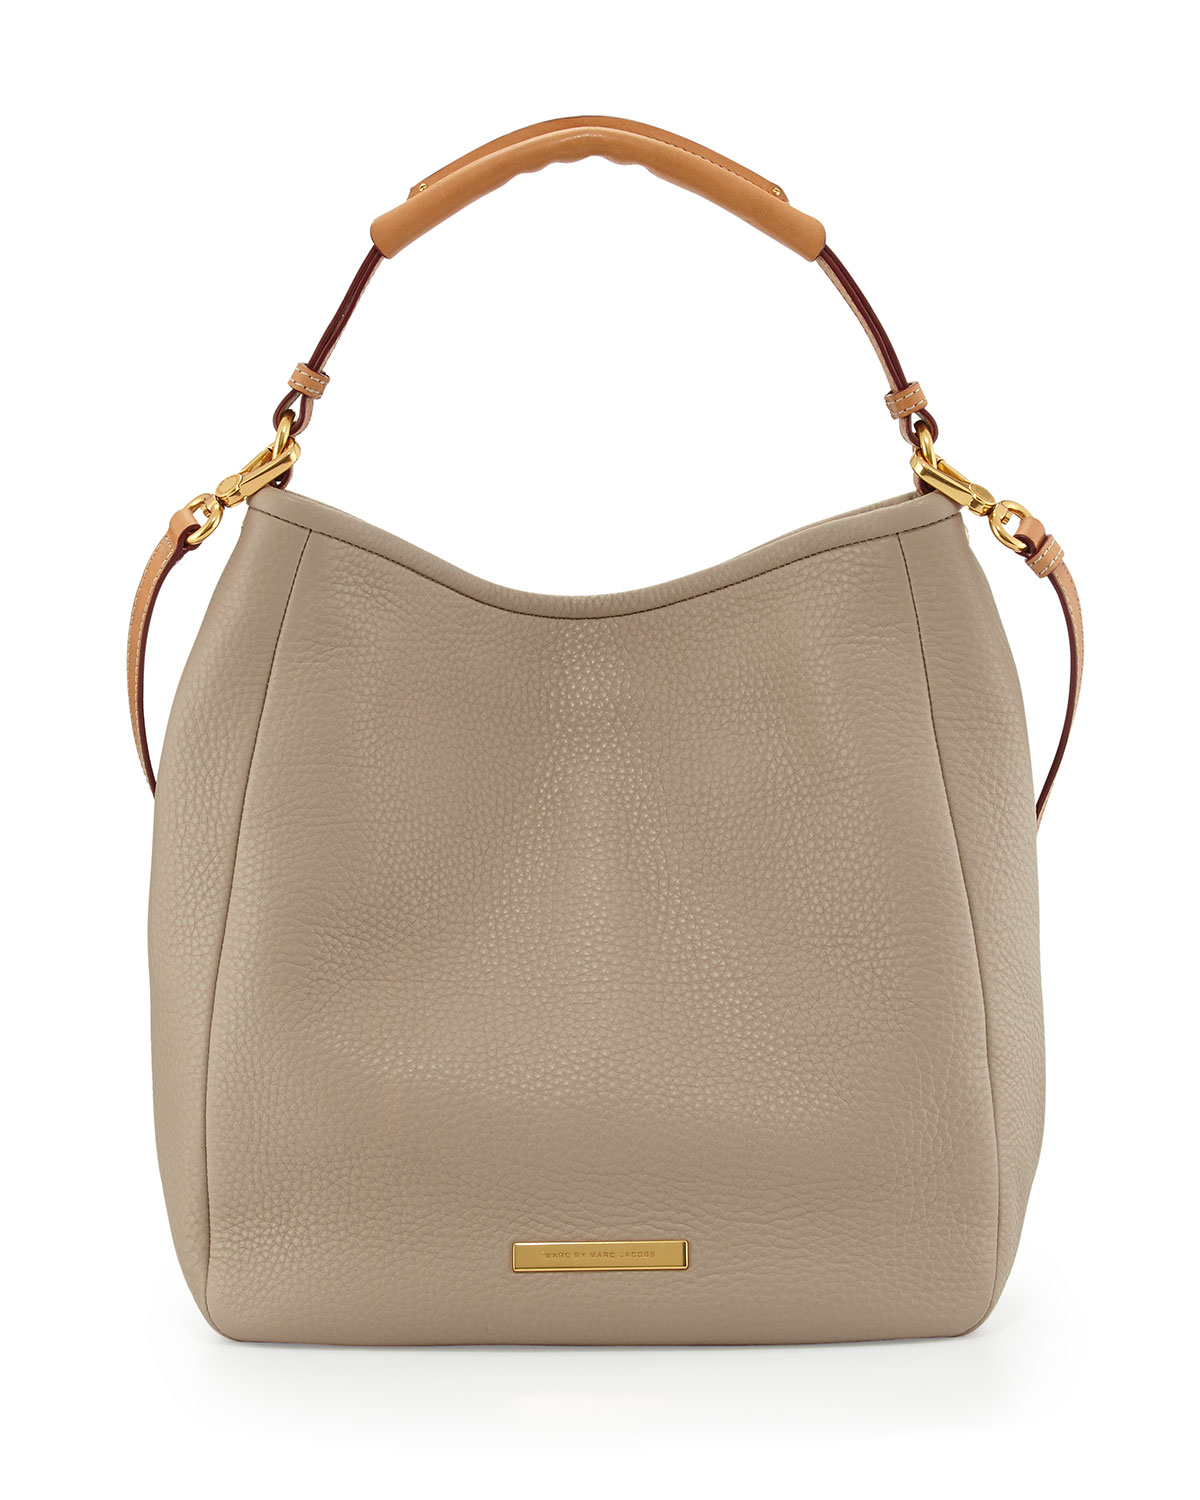 marc by marc jacobs softy leather saddle hobo bag creme in beige creme lyst. Black Bedroom Furniture Sets. Home Design Ideas